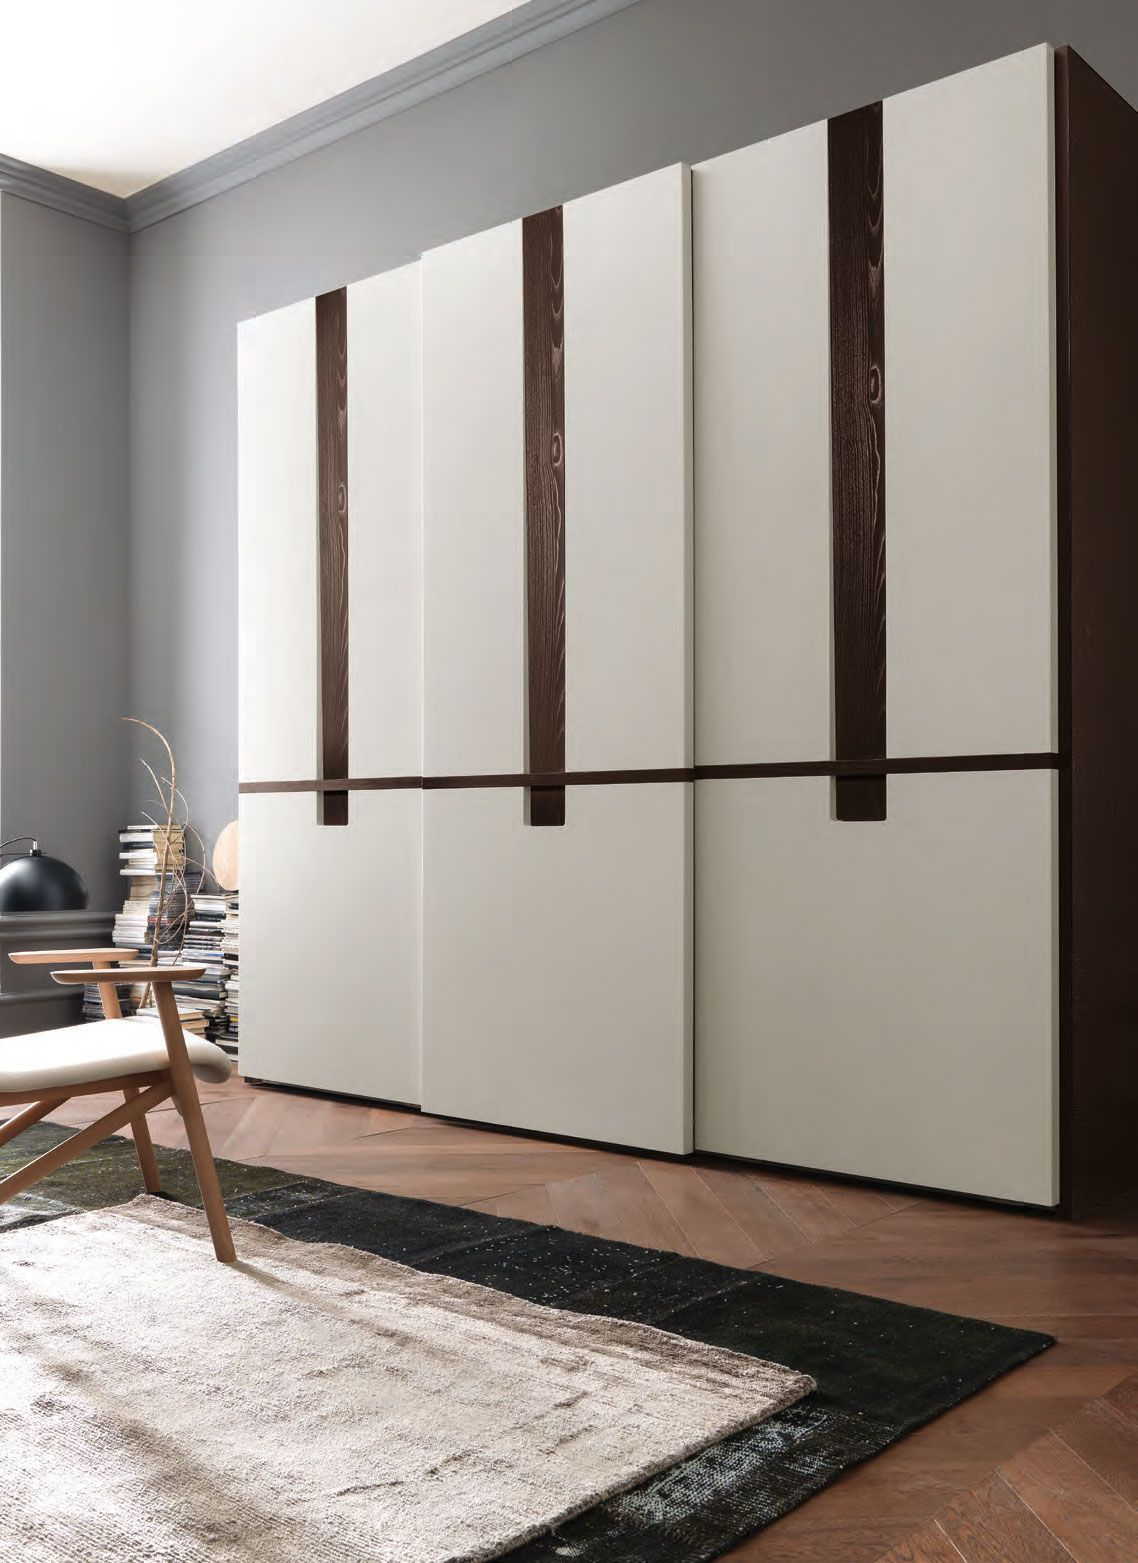 35 modern wardrobe furniture designs wardrobes 12458 | 4a6f531988d428ac8869301c2271f5ea